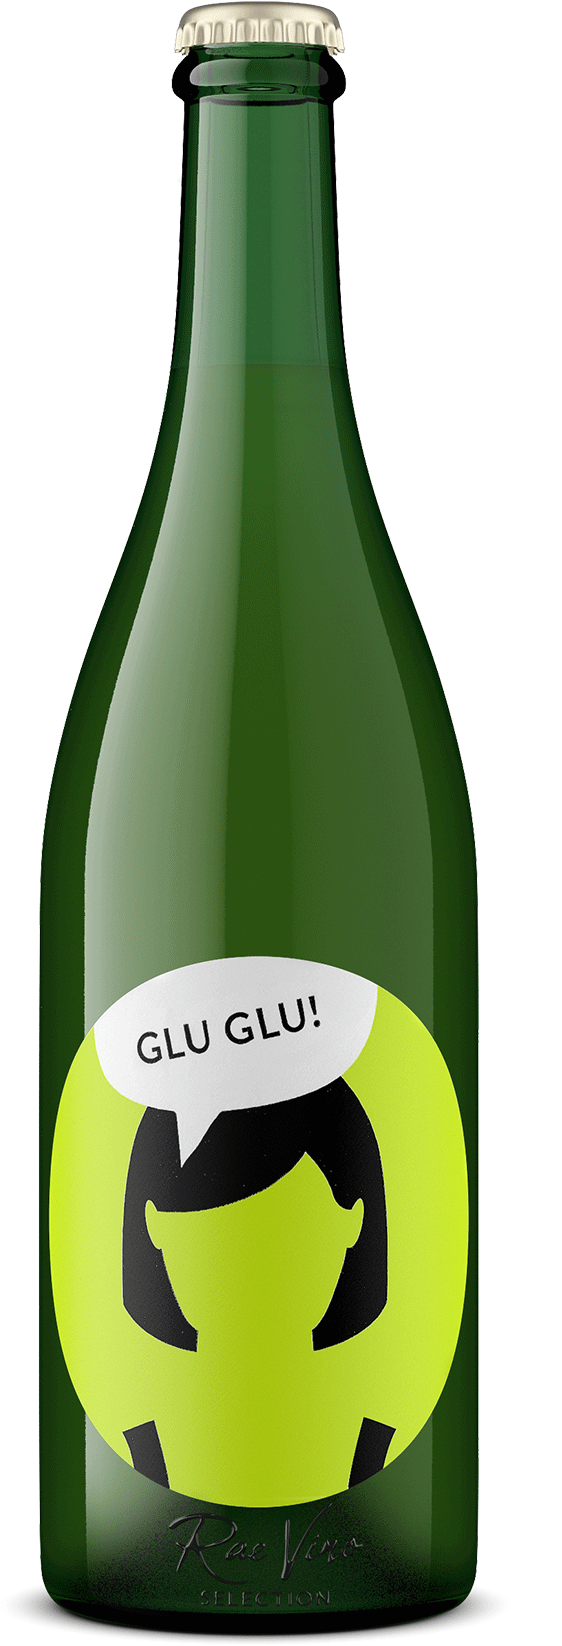 Milan Nestarec : Youngster 'Glu Glu!' : White Blend | 2019